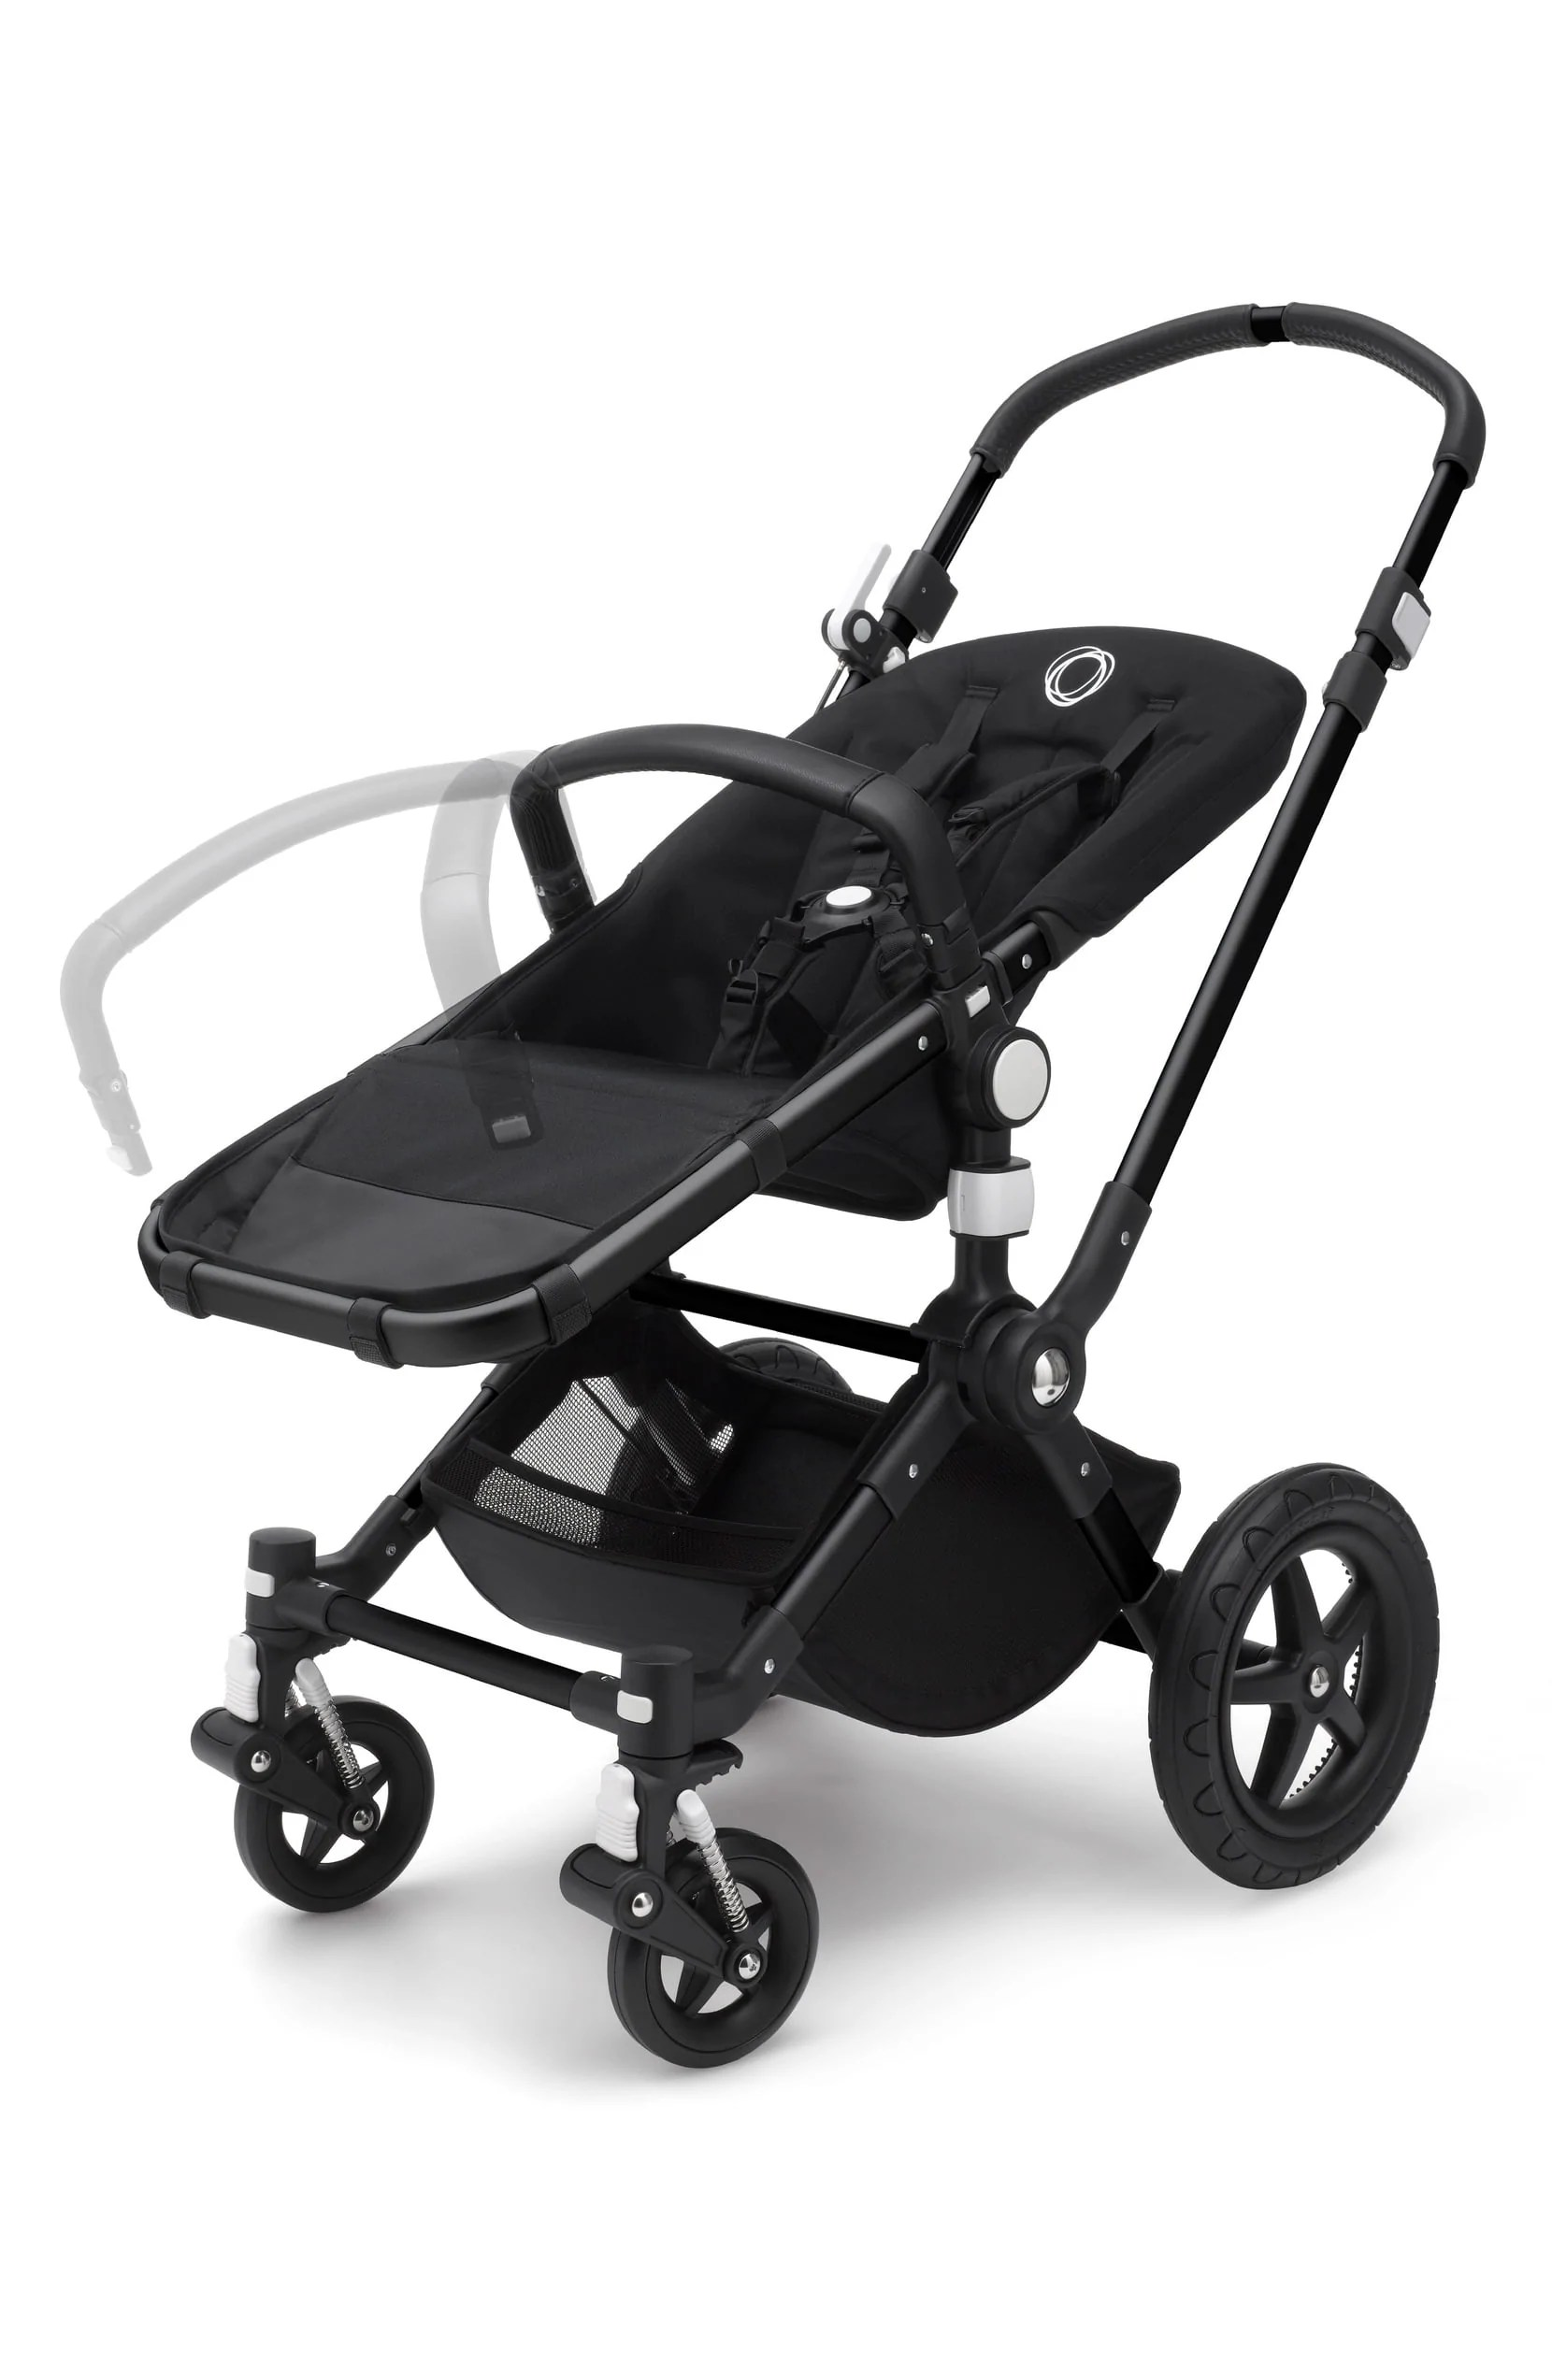 Bugaboo Cameleon 3 Maximum Weight Bugaboo Cameleon 3 Plus Complete Black Black Black